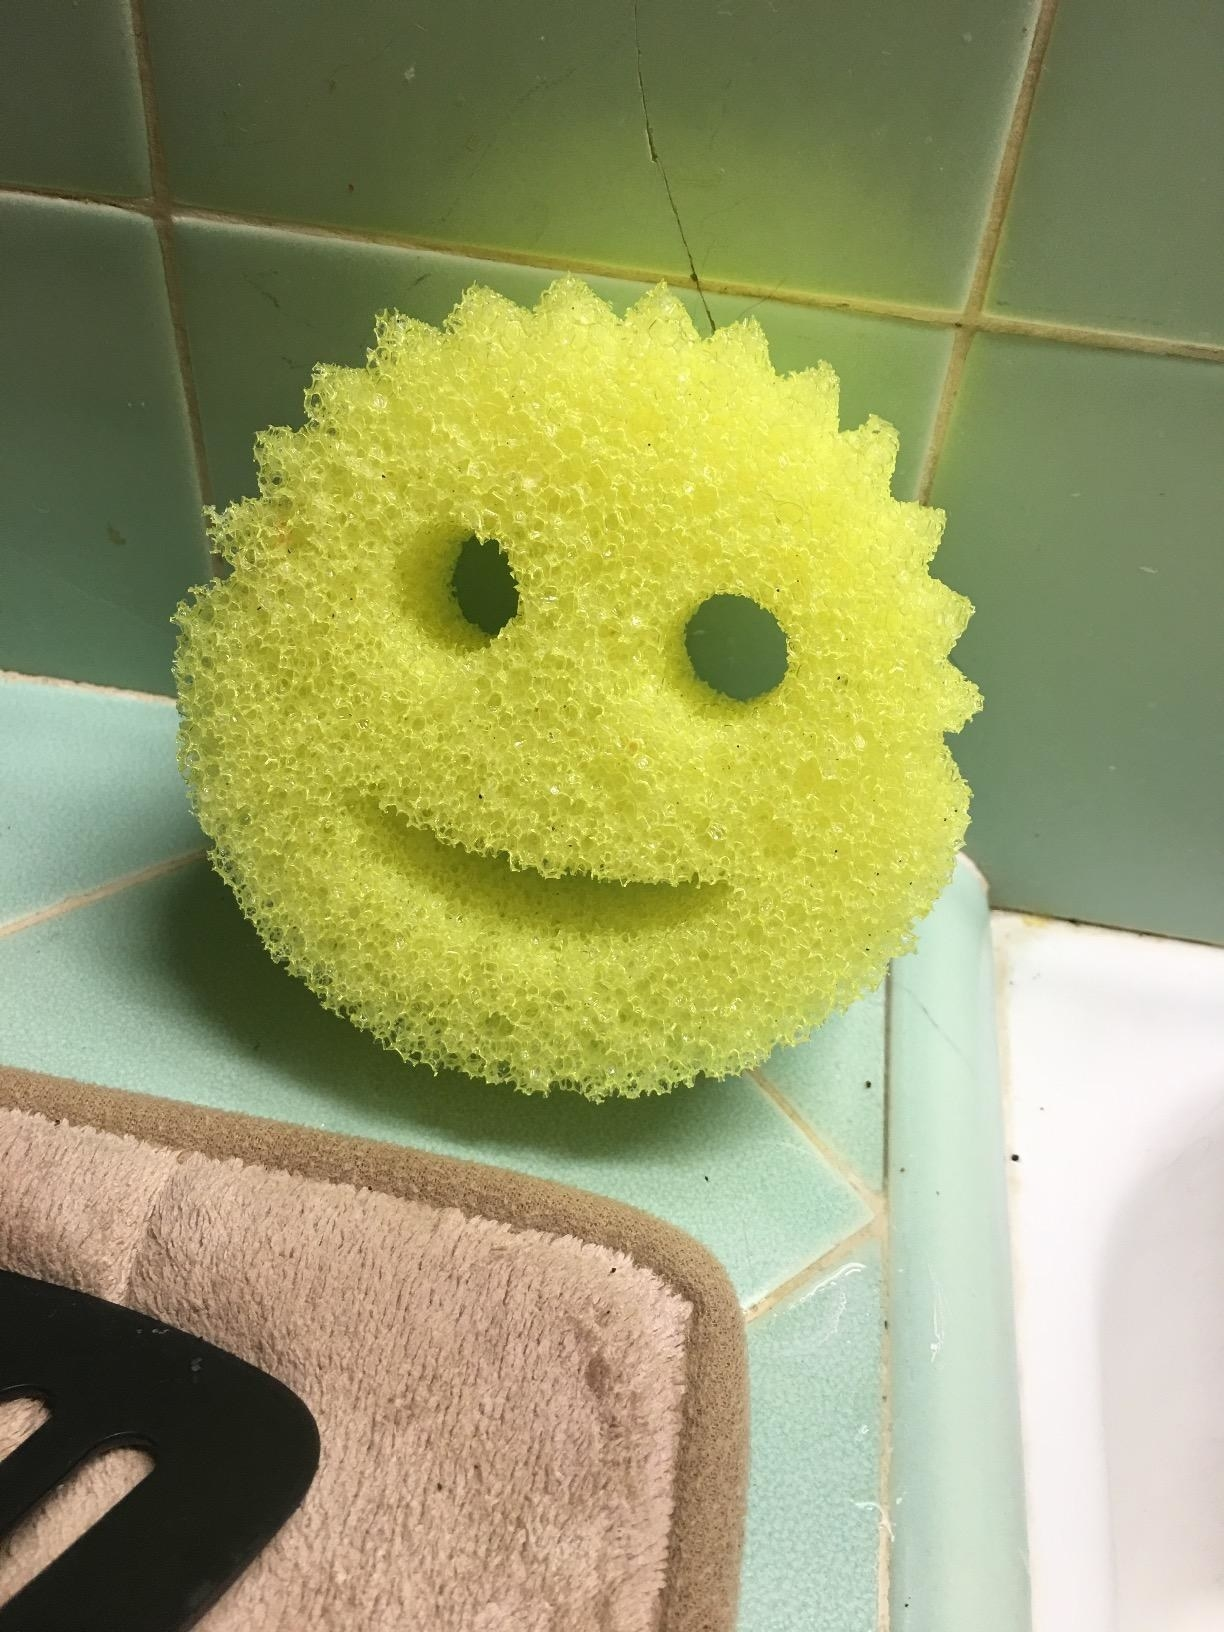 Reviewer photo of yellow Scrub Daddy